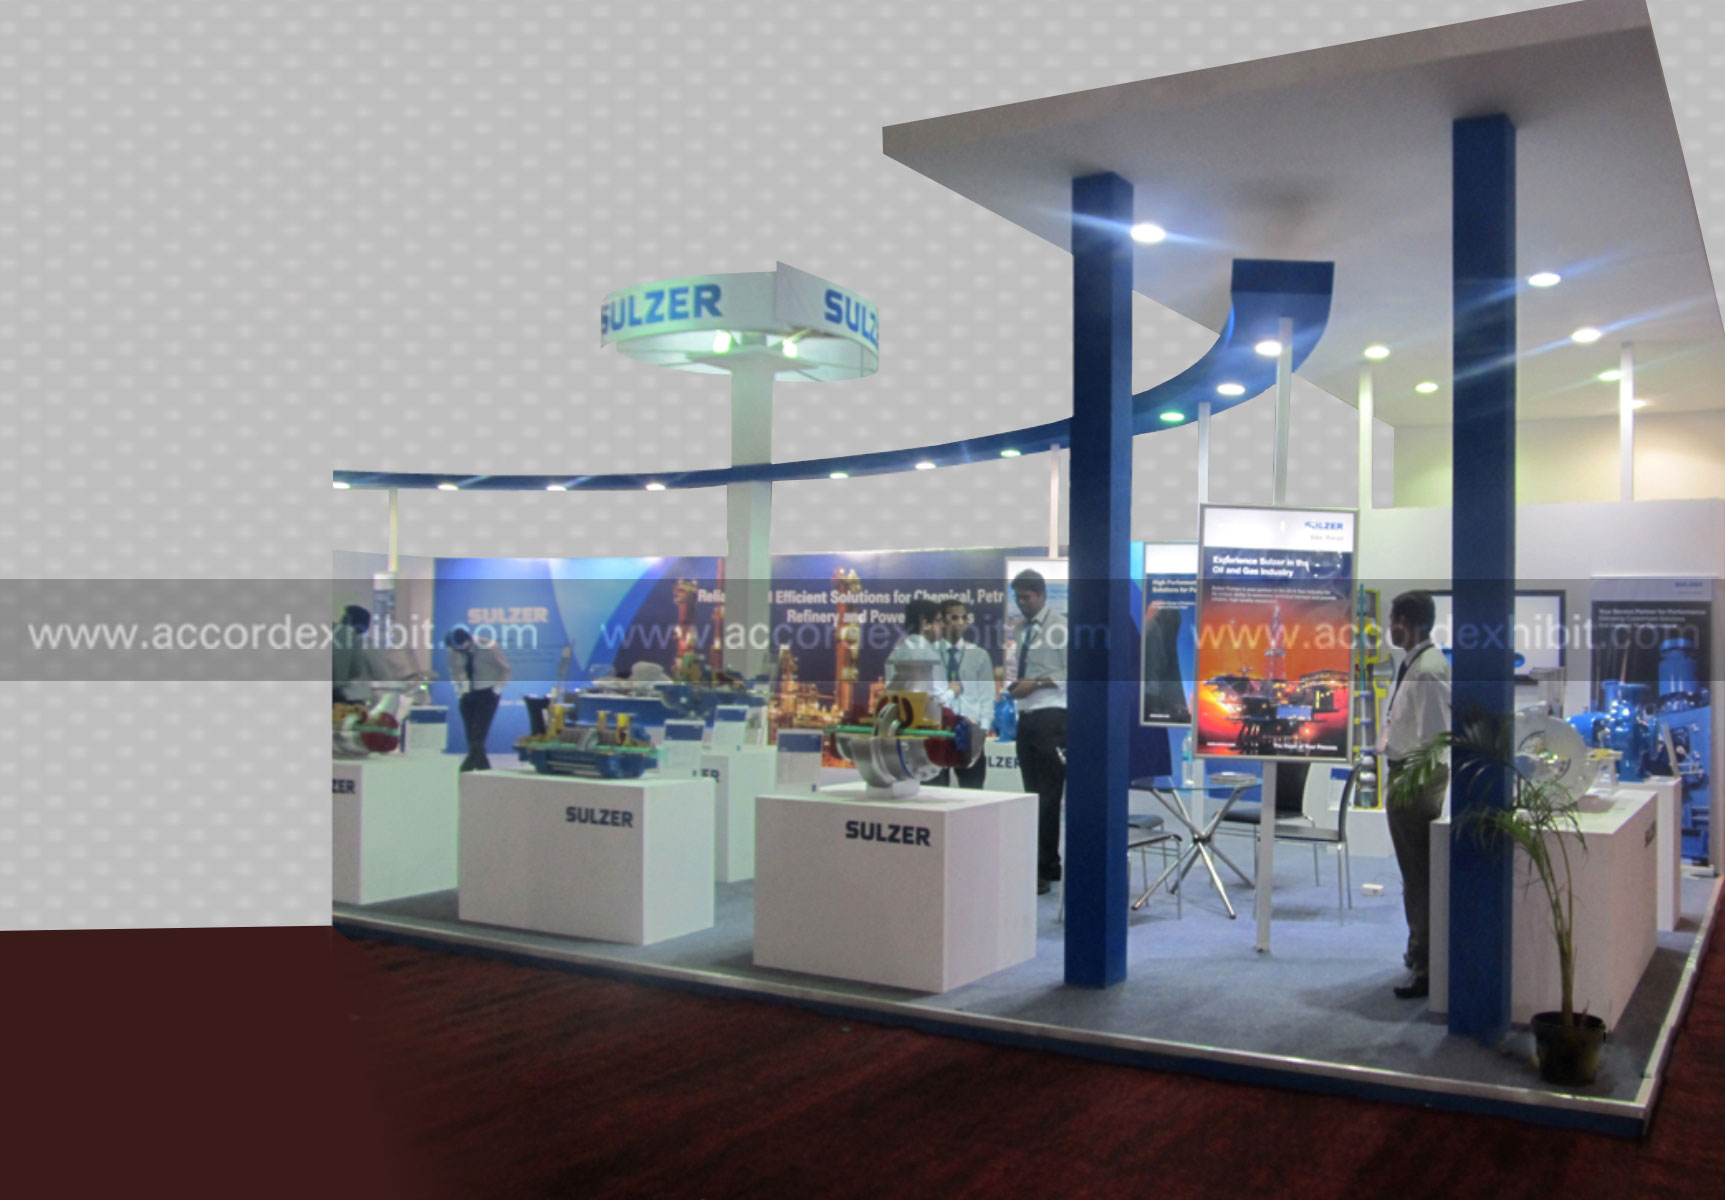 Exhibition Stall Names : Exhibition stall design for sulzer btl activities